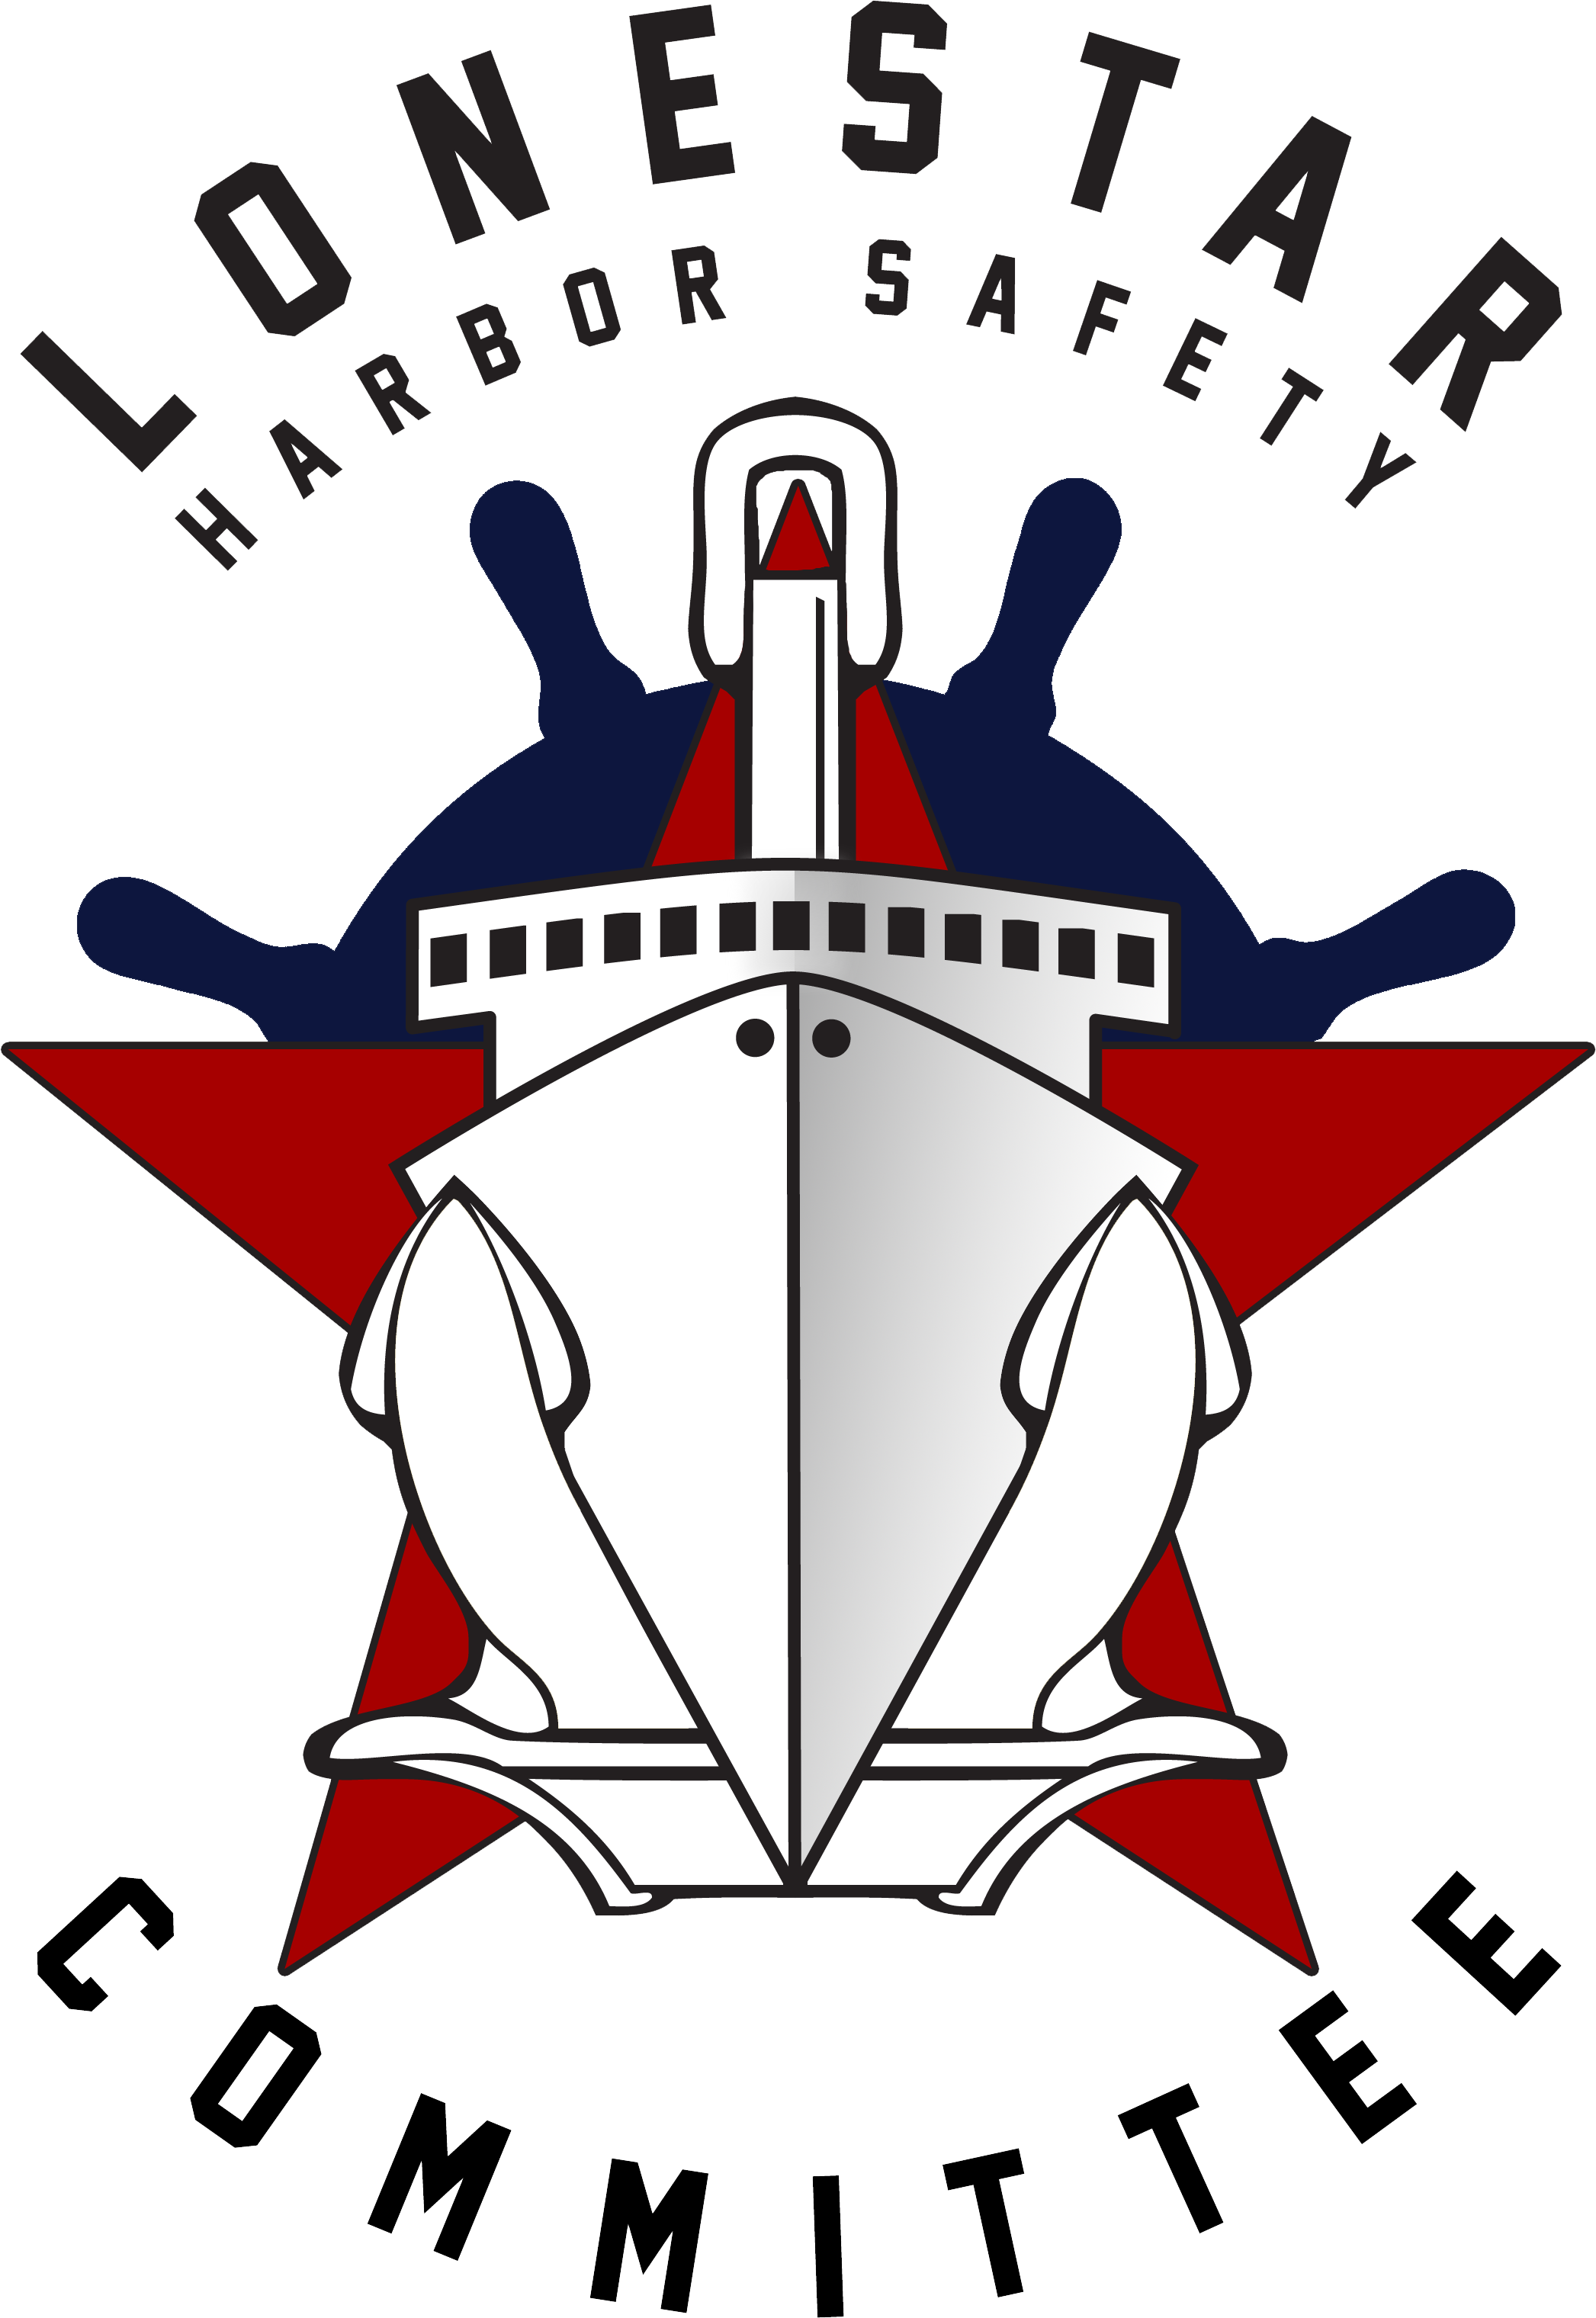 Lone Star Harbor Safety Committee